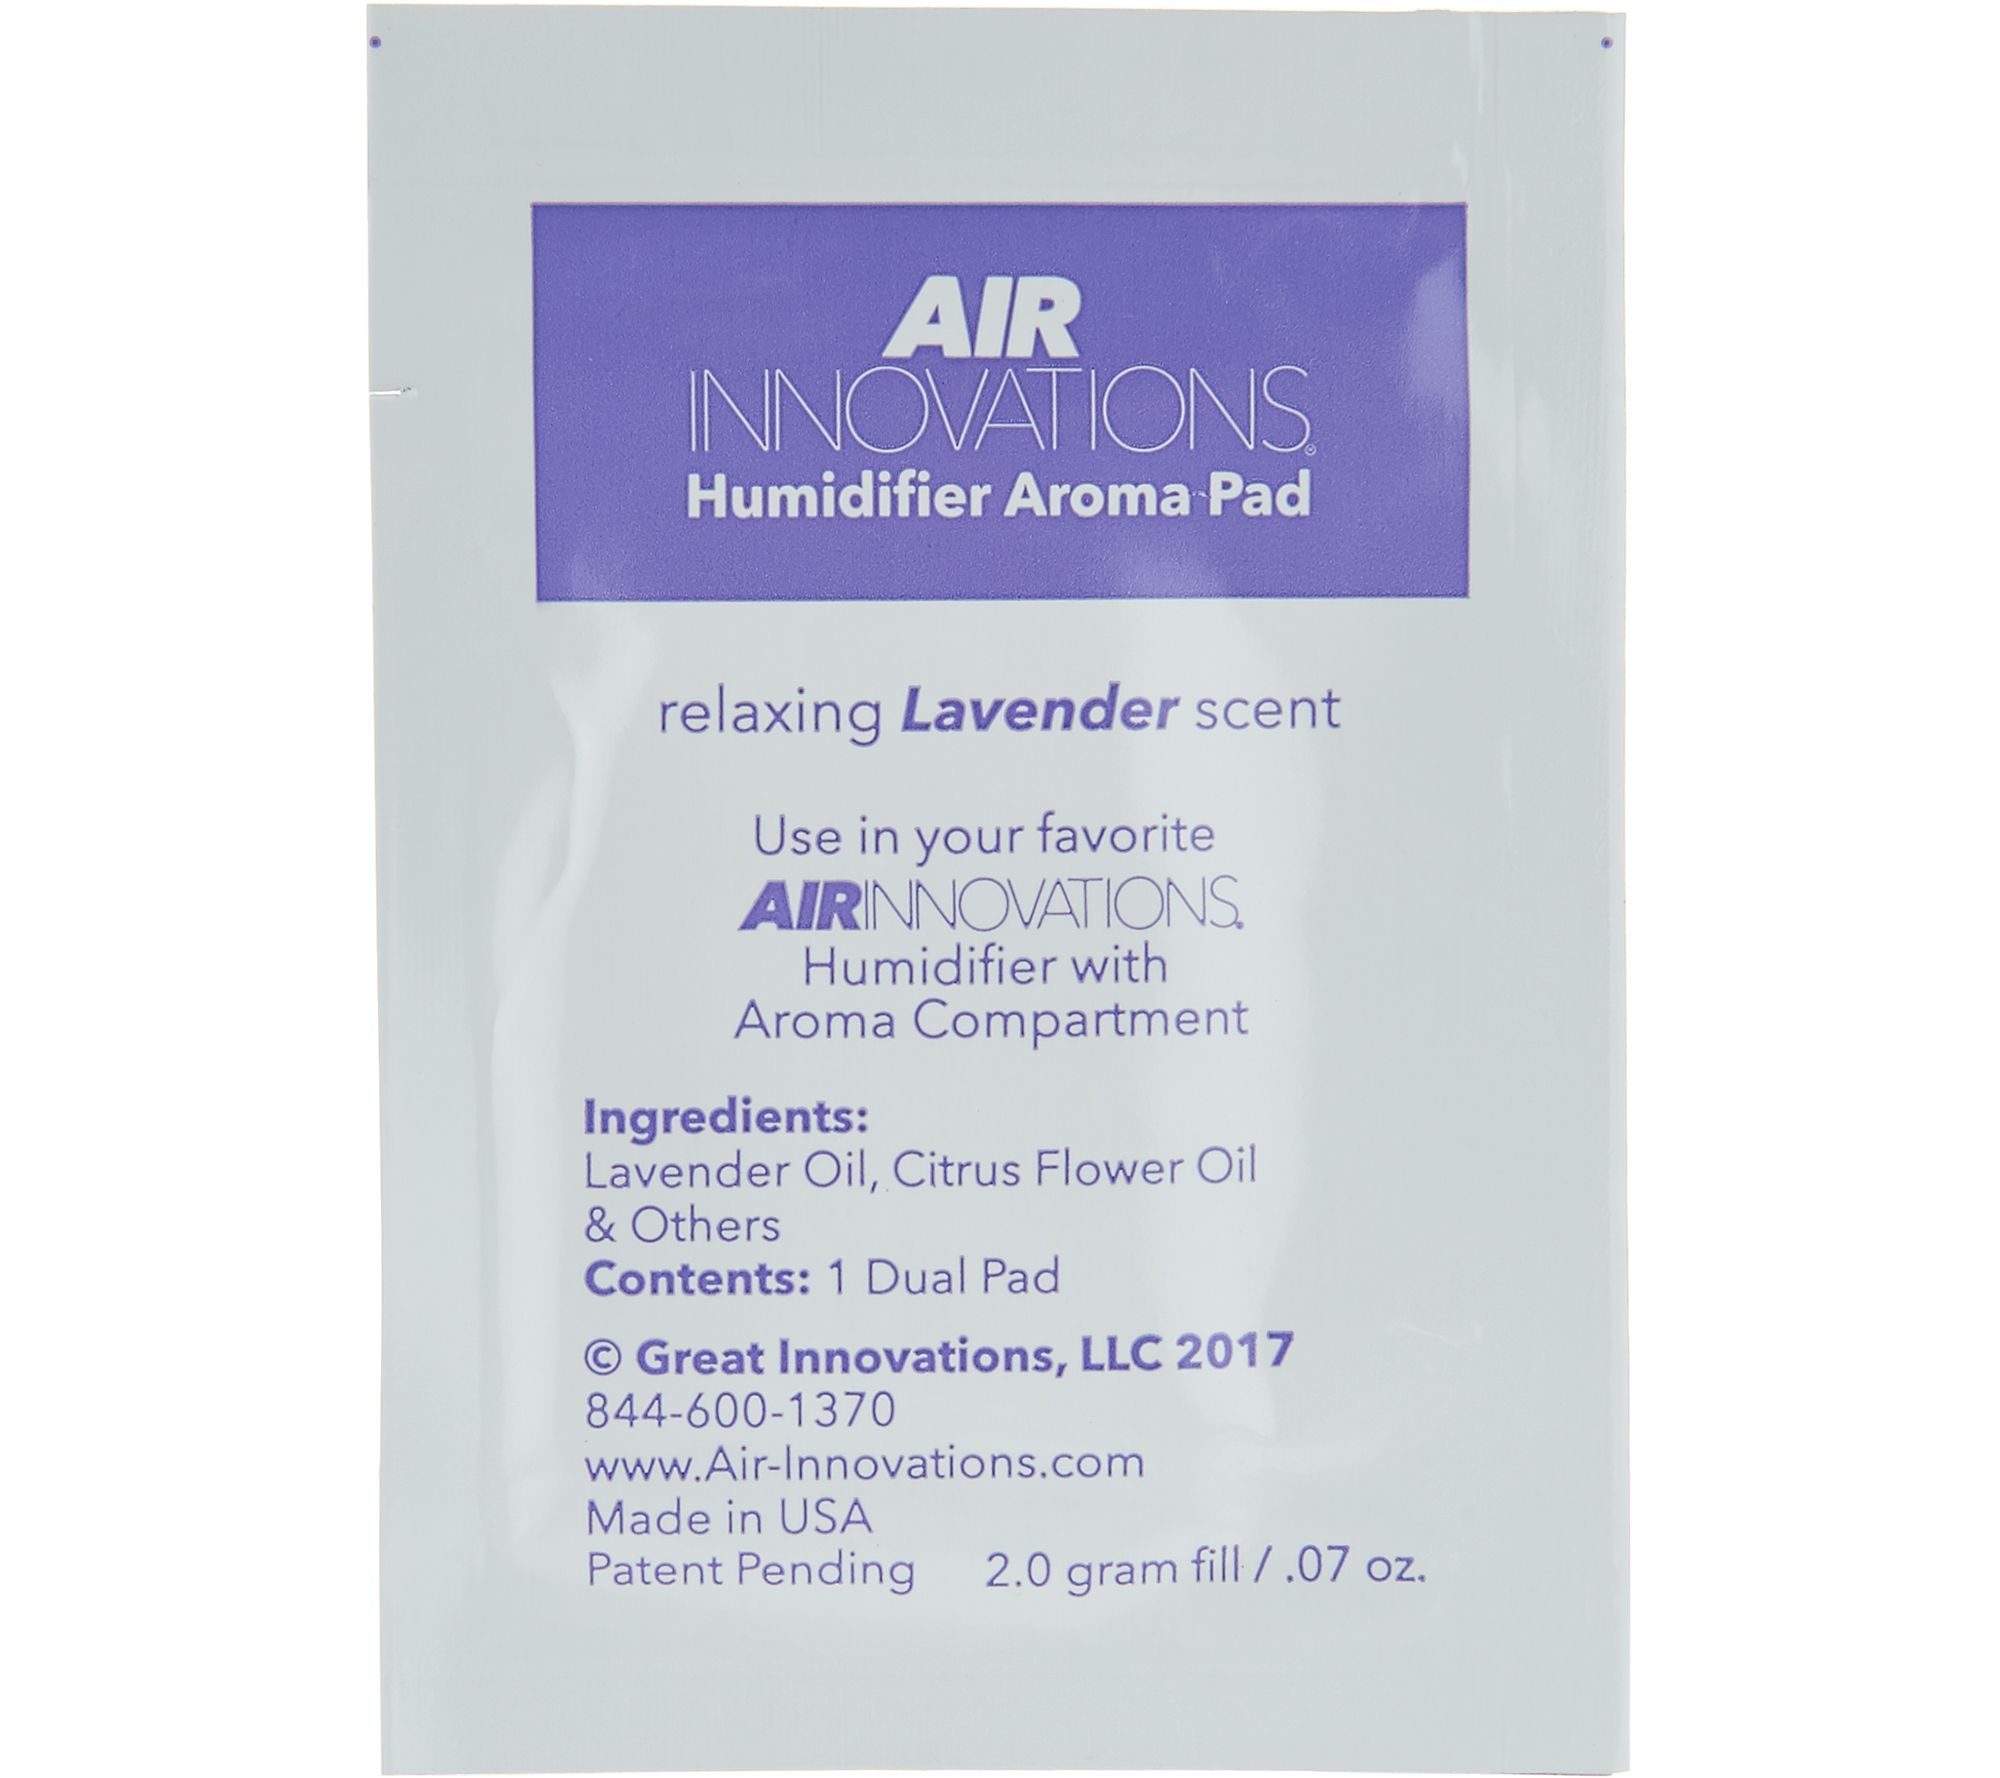 Air Innovations 12 Pack Essential Oil Humidifier Aroma Pads Page 1